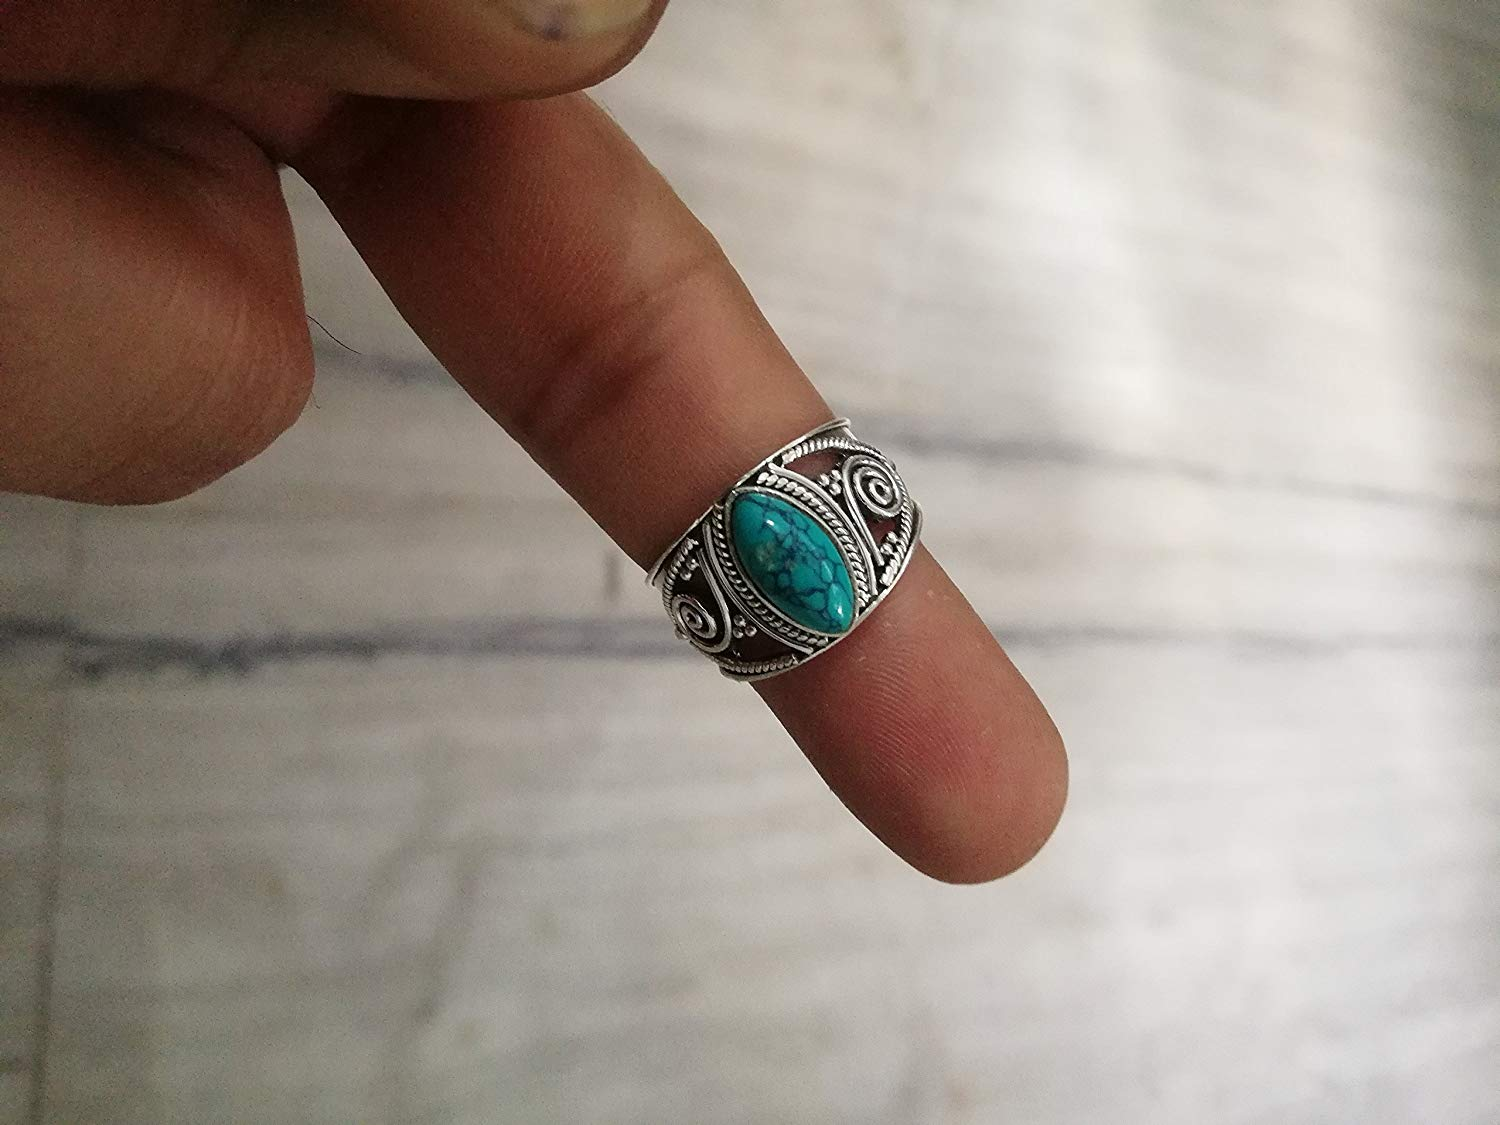 Turquoise Ring, 925 Sterling Silver, December Birthstone, Wide Band Ring, New Design Ring, Vintage Ring, Gorgeous Ring, Middle Eastern Style, Midi Ring, Victorian Ring, Angel Ring, US All Size Ring